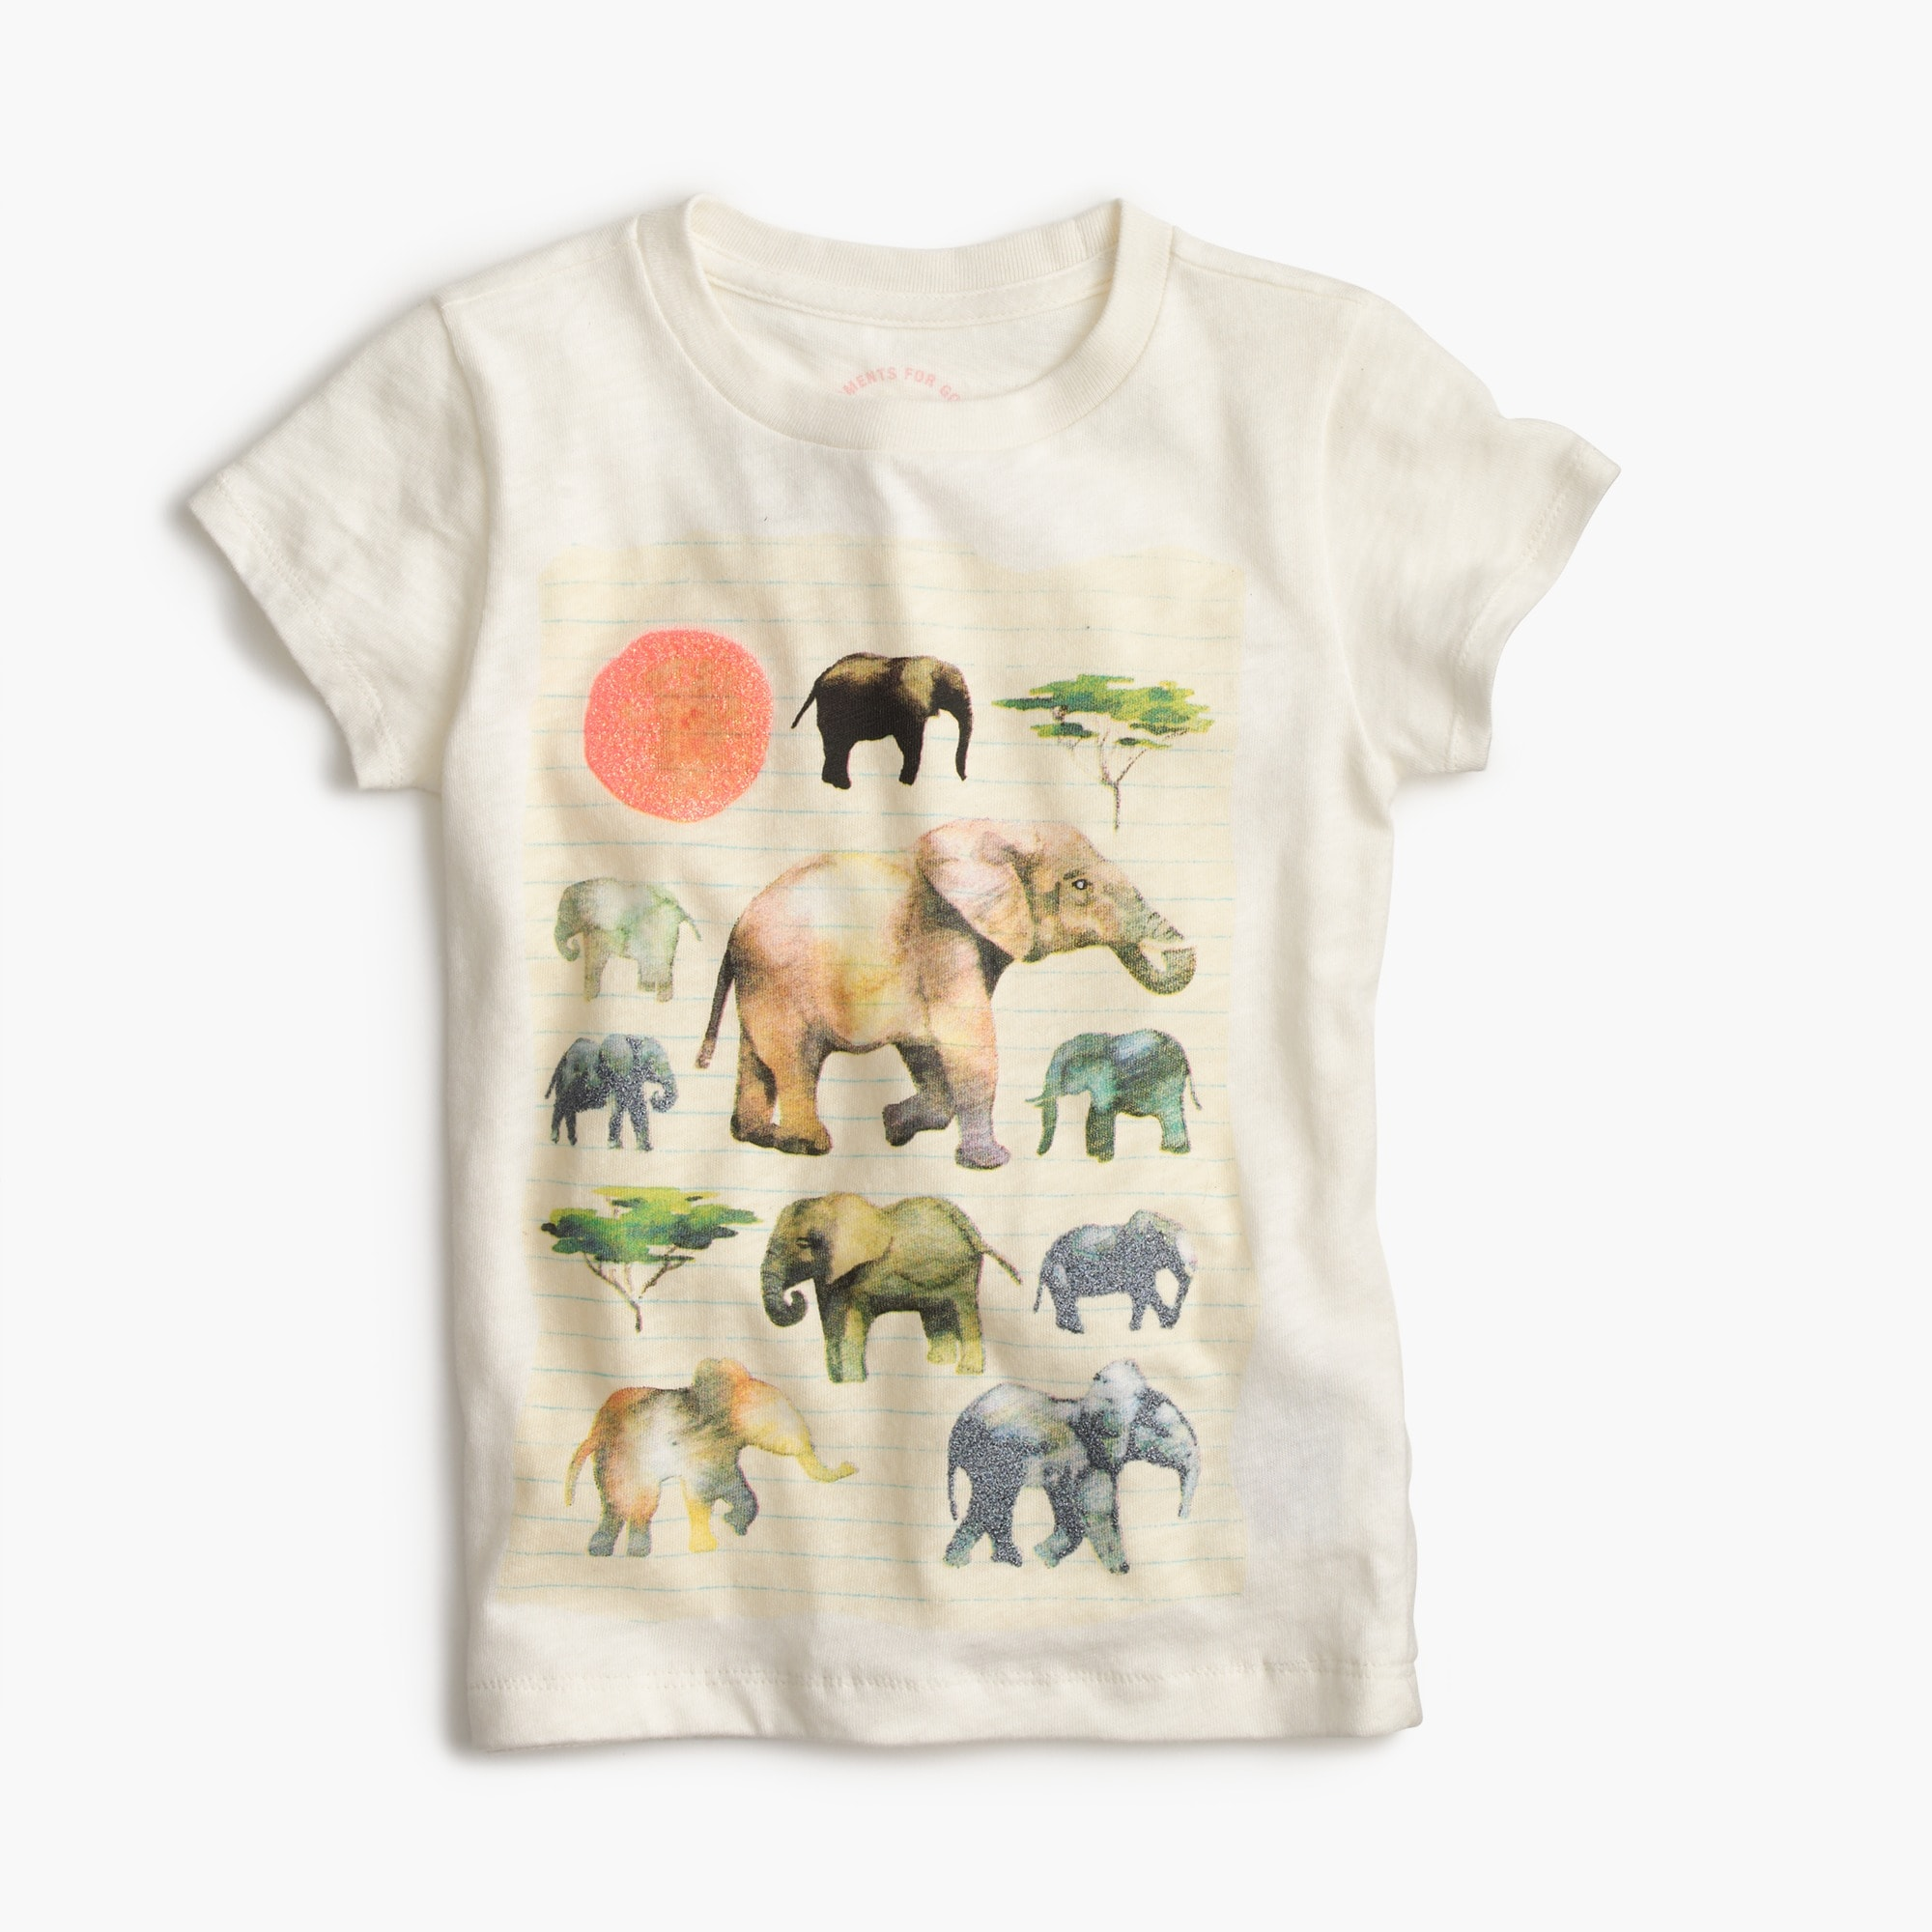 girls' crewcuts for david sheldrick wildlife trust elephant t-shirt : girls' tees